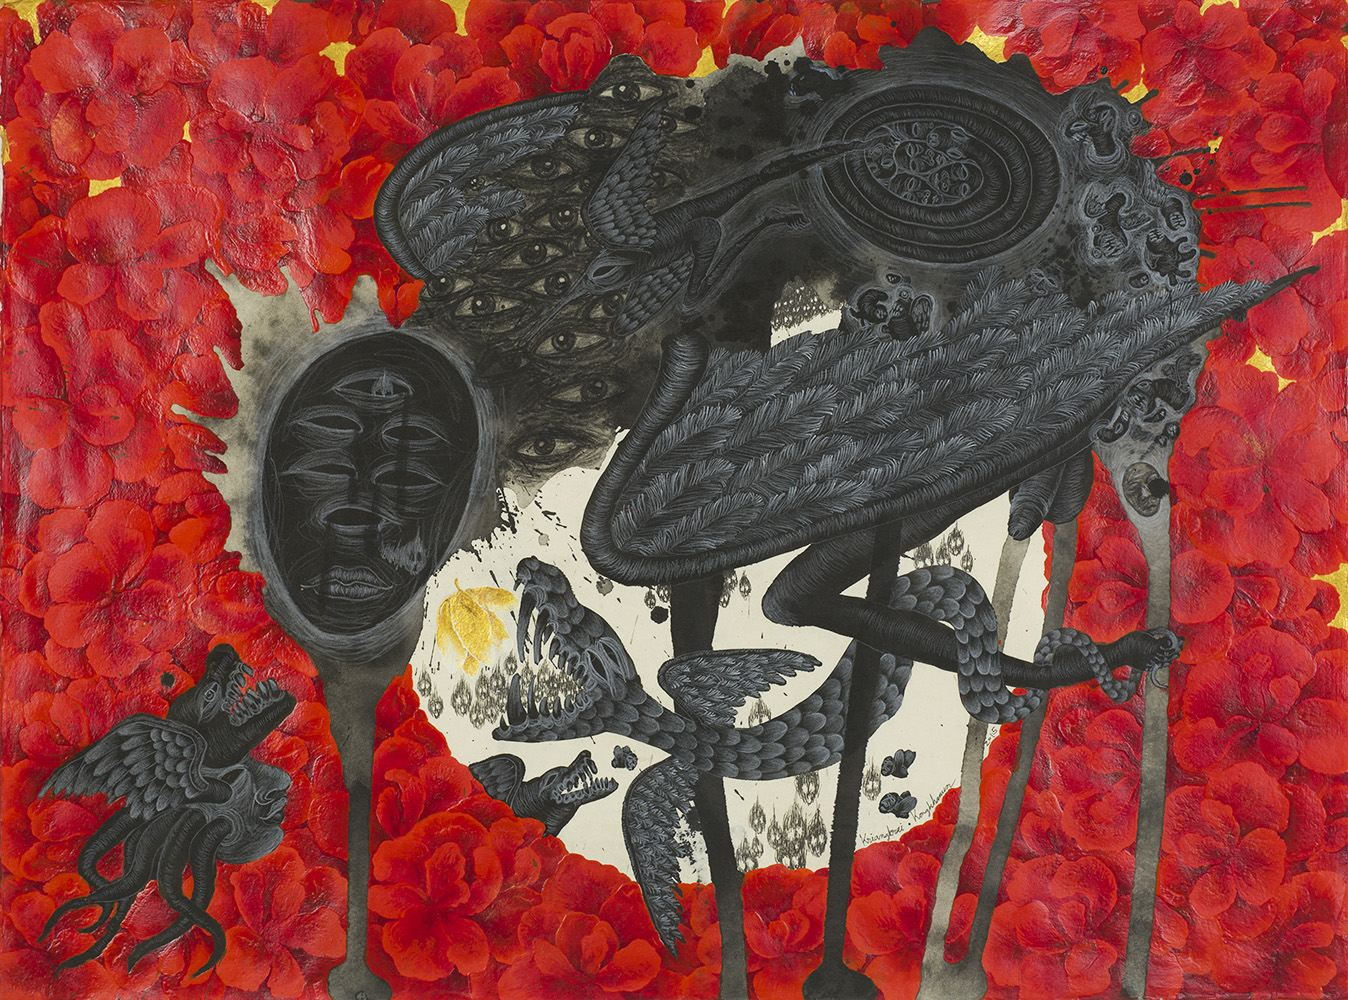 Kriangkrai Kongkhanun    The Golden Flower, Chapter 1 The Lose Moon  , 2015 Chinese ink, pen, pencil on Thai handmade paper 23.5 x 31.5 inches 59.7 x 80 cm KrK 9